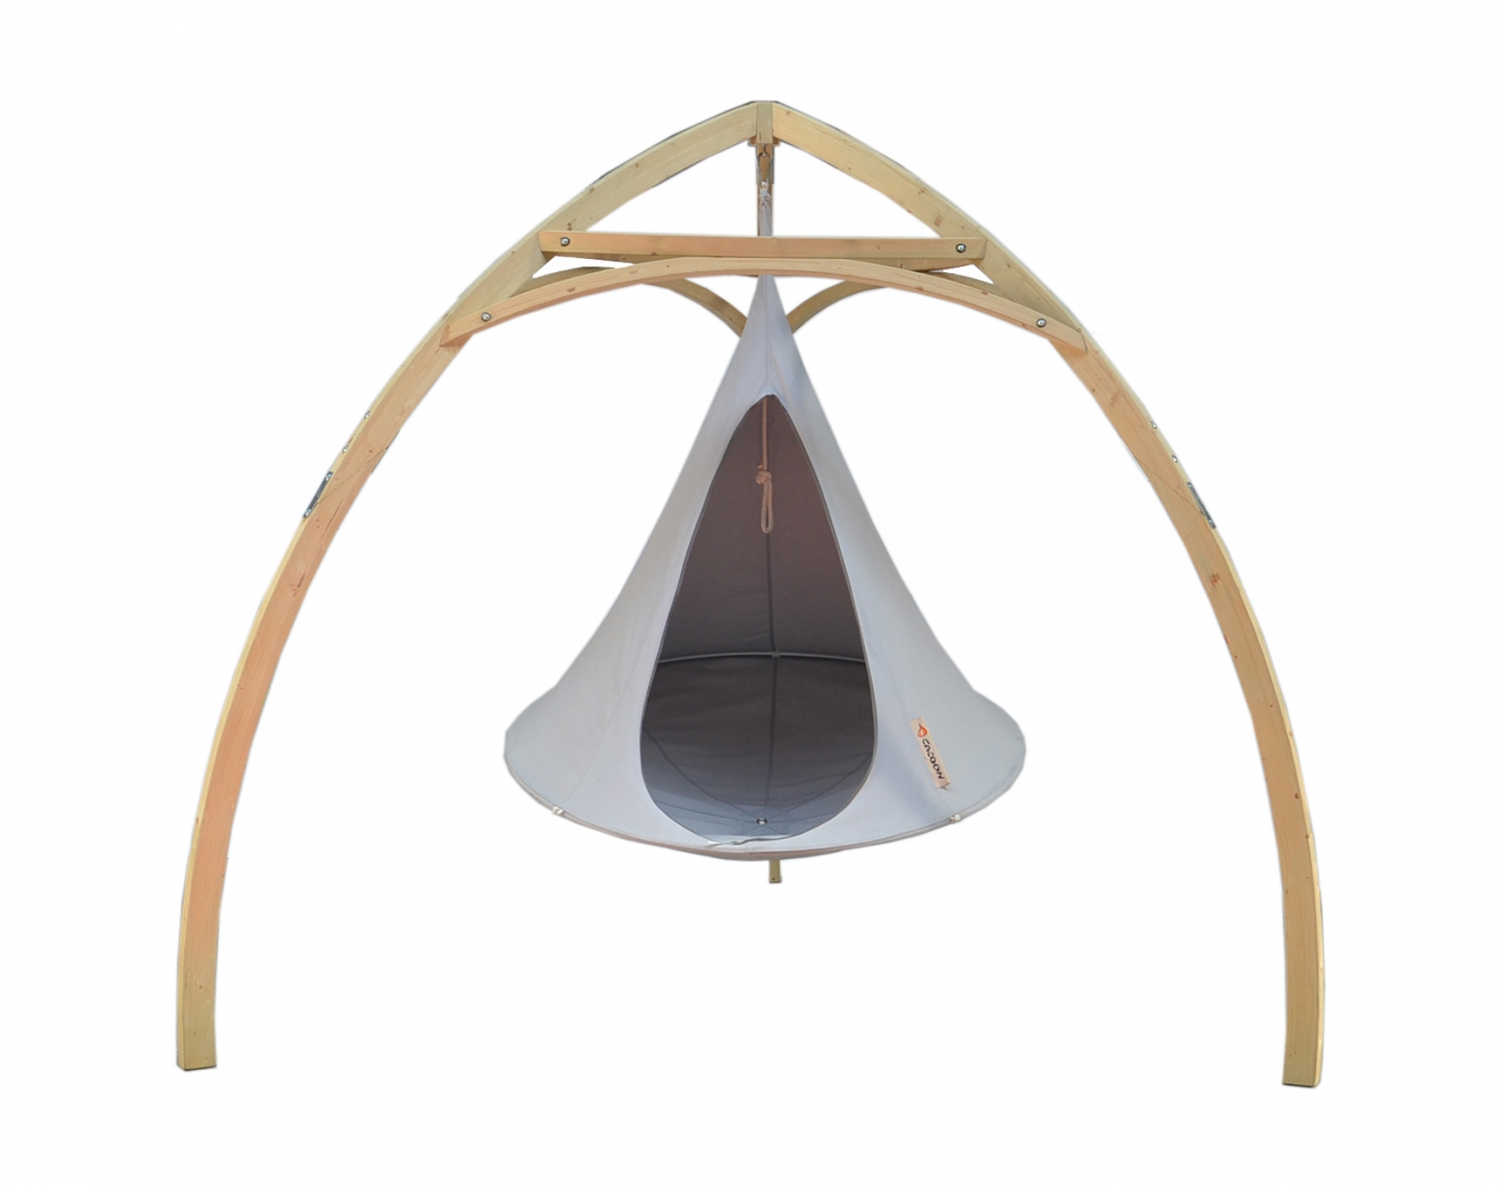 Cacoon tripod wood frame for hanging tent patio life for Wood tents